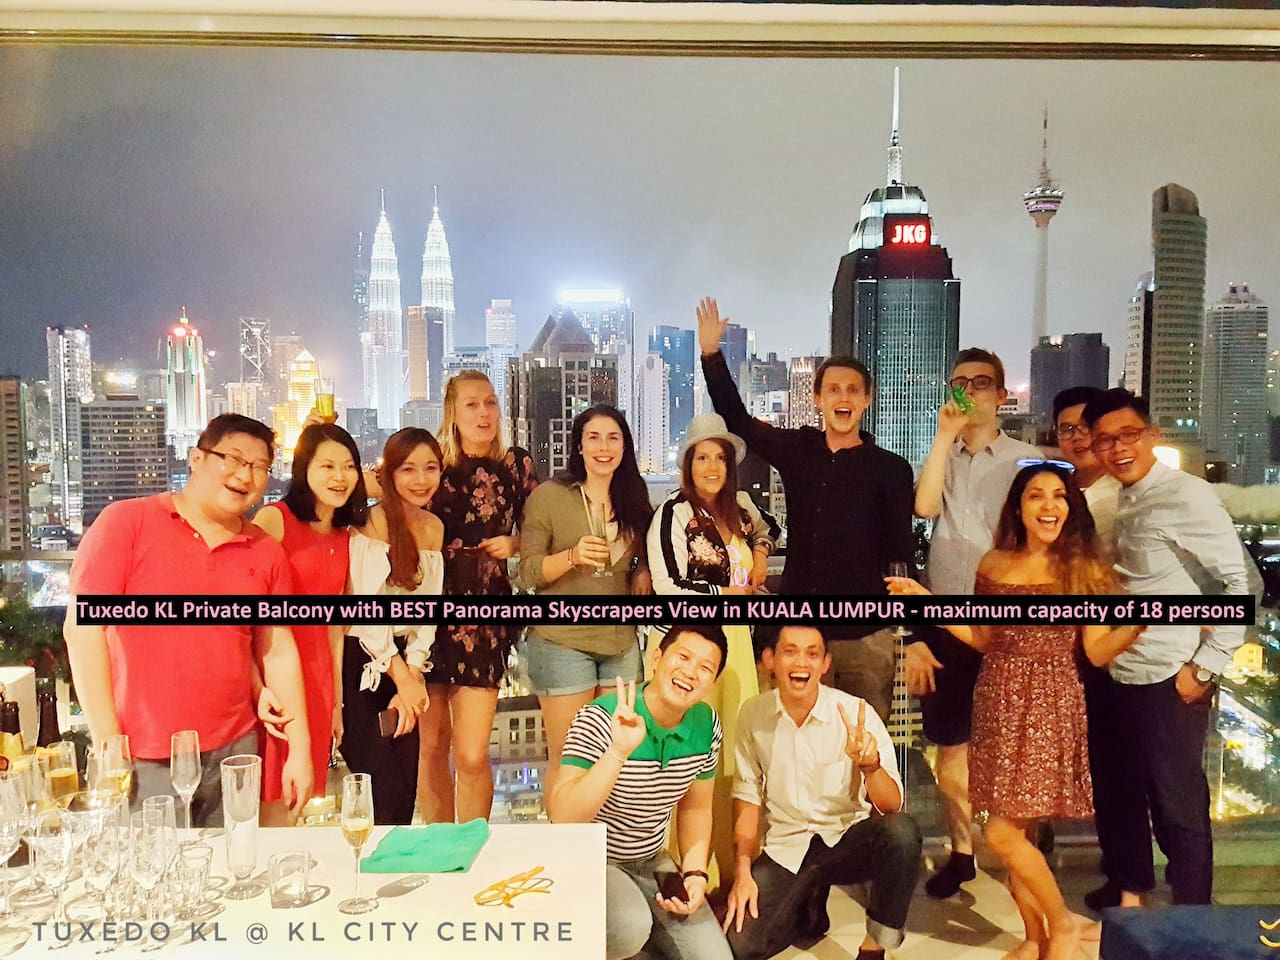 Location: Private Balcony of Tuxedo KL with Best of the Best City View of Kuala Lumpur. Best background for breathtaking party or event pictures!